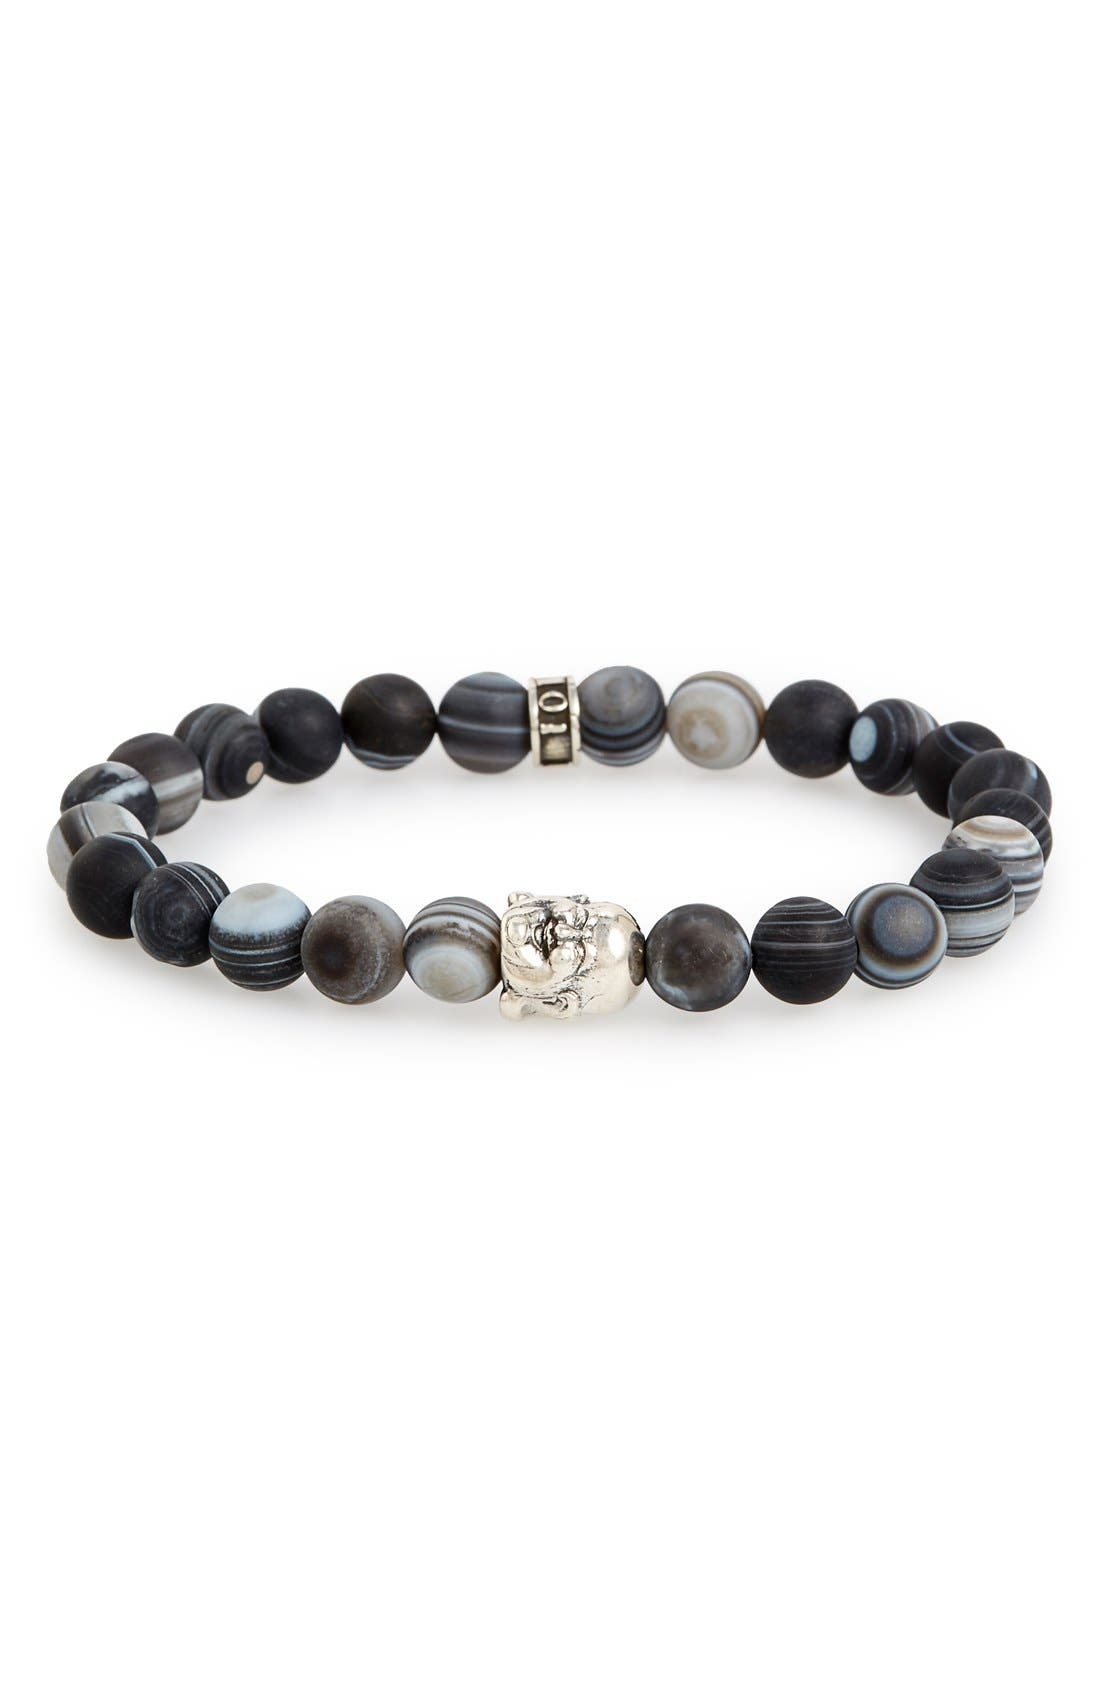 Main Image - Room101 Frosted Agate Buddha Bead Bracelet